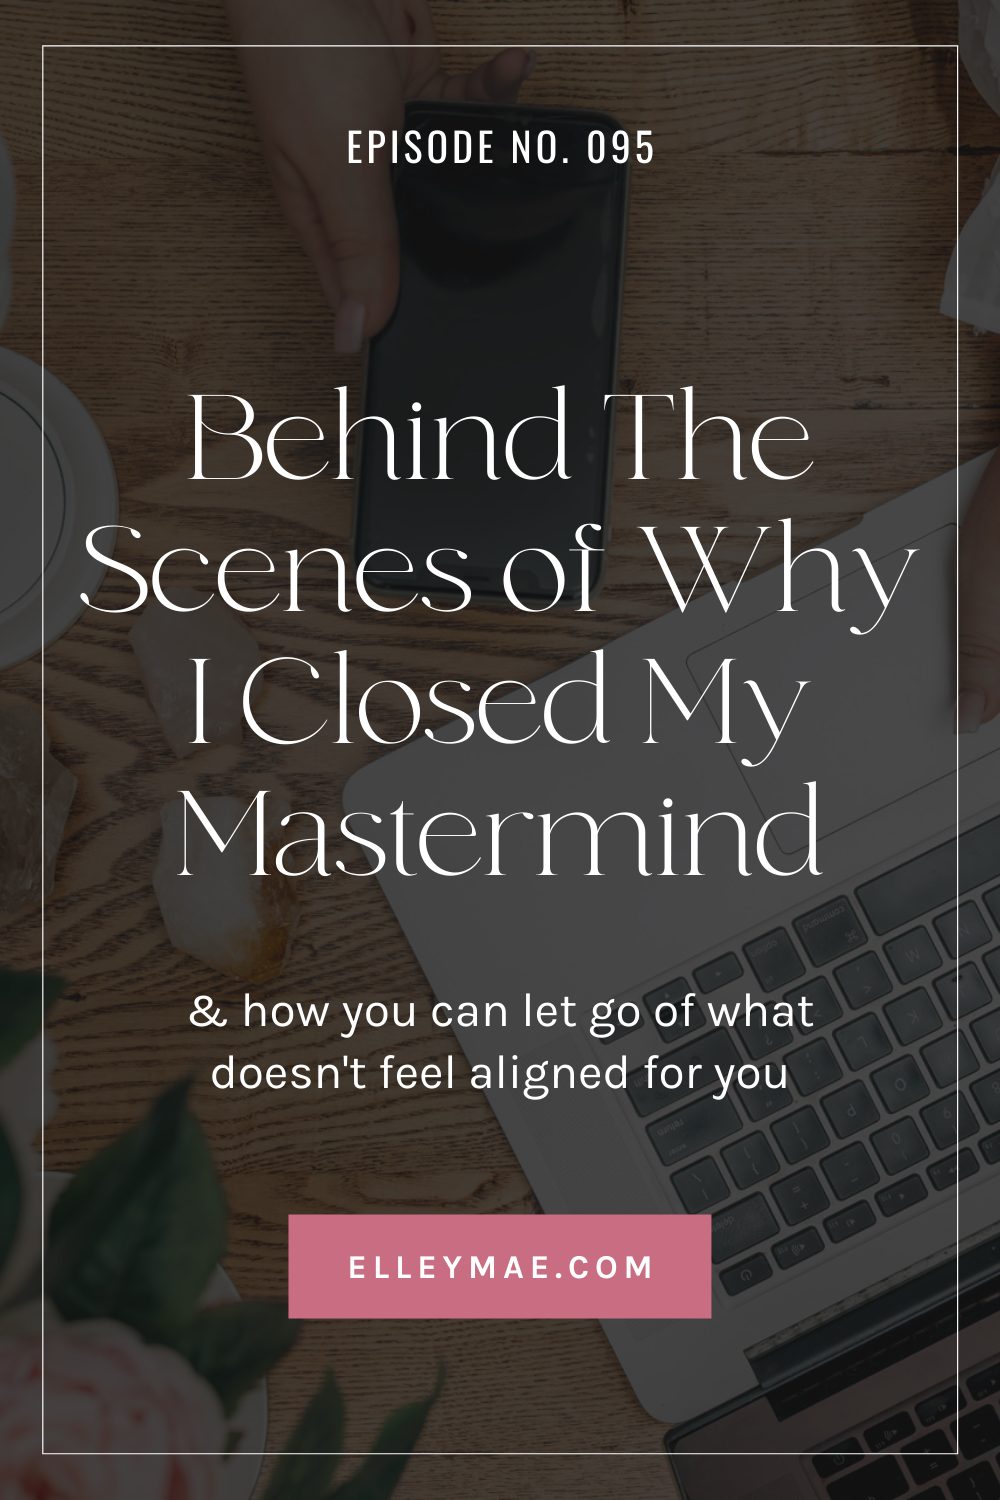 095. Why I Closed My Mastermind (Letting Things Go)